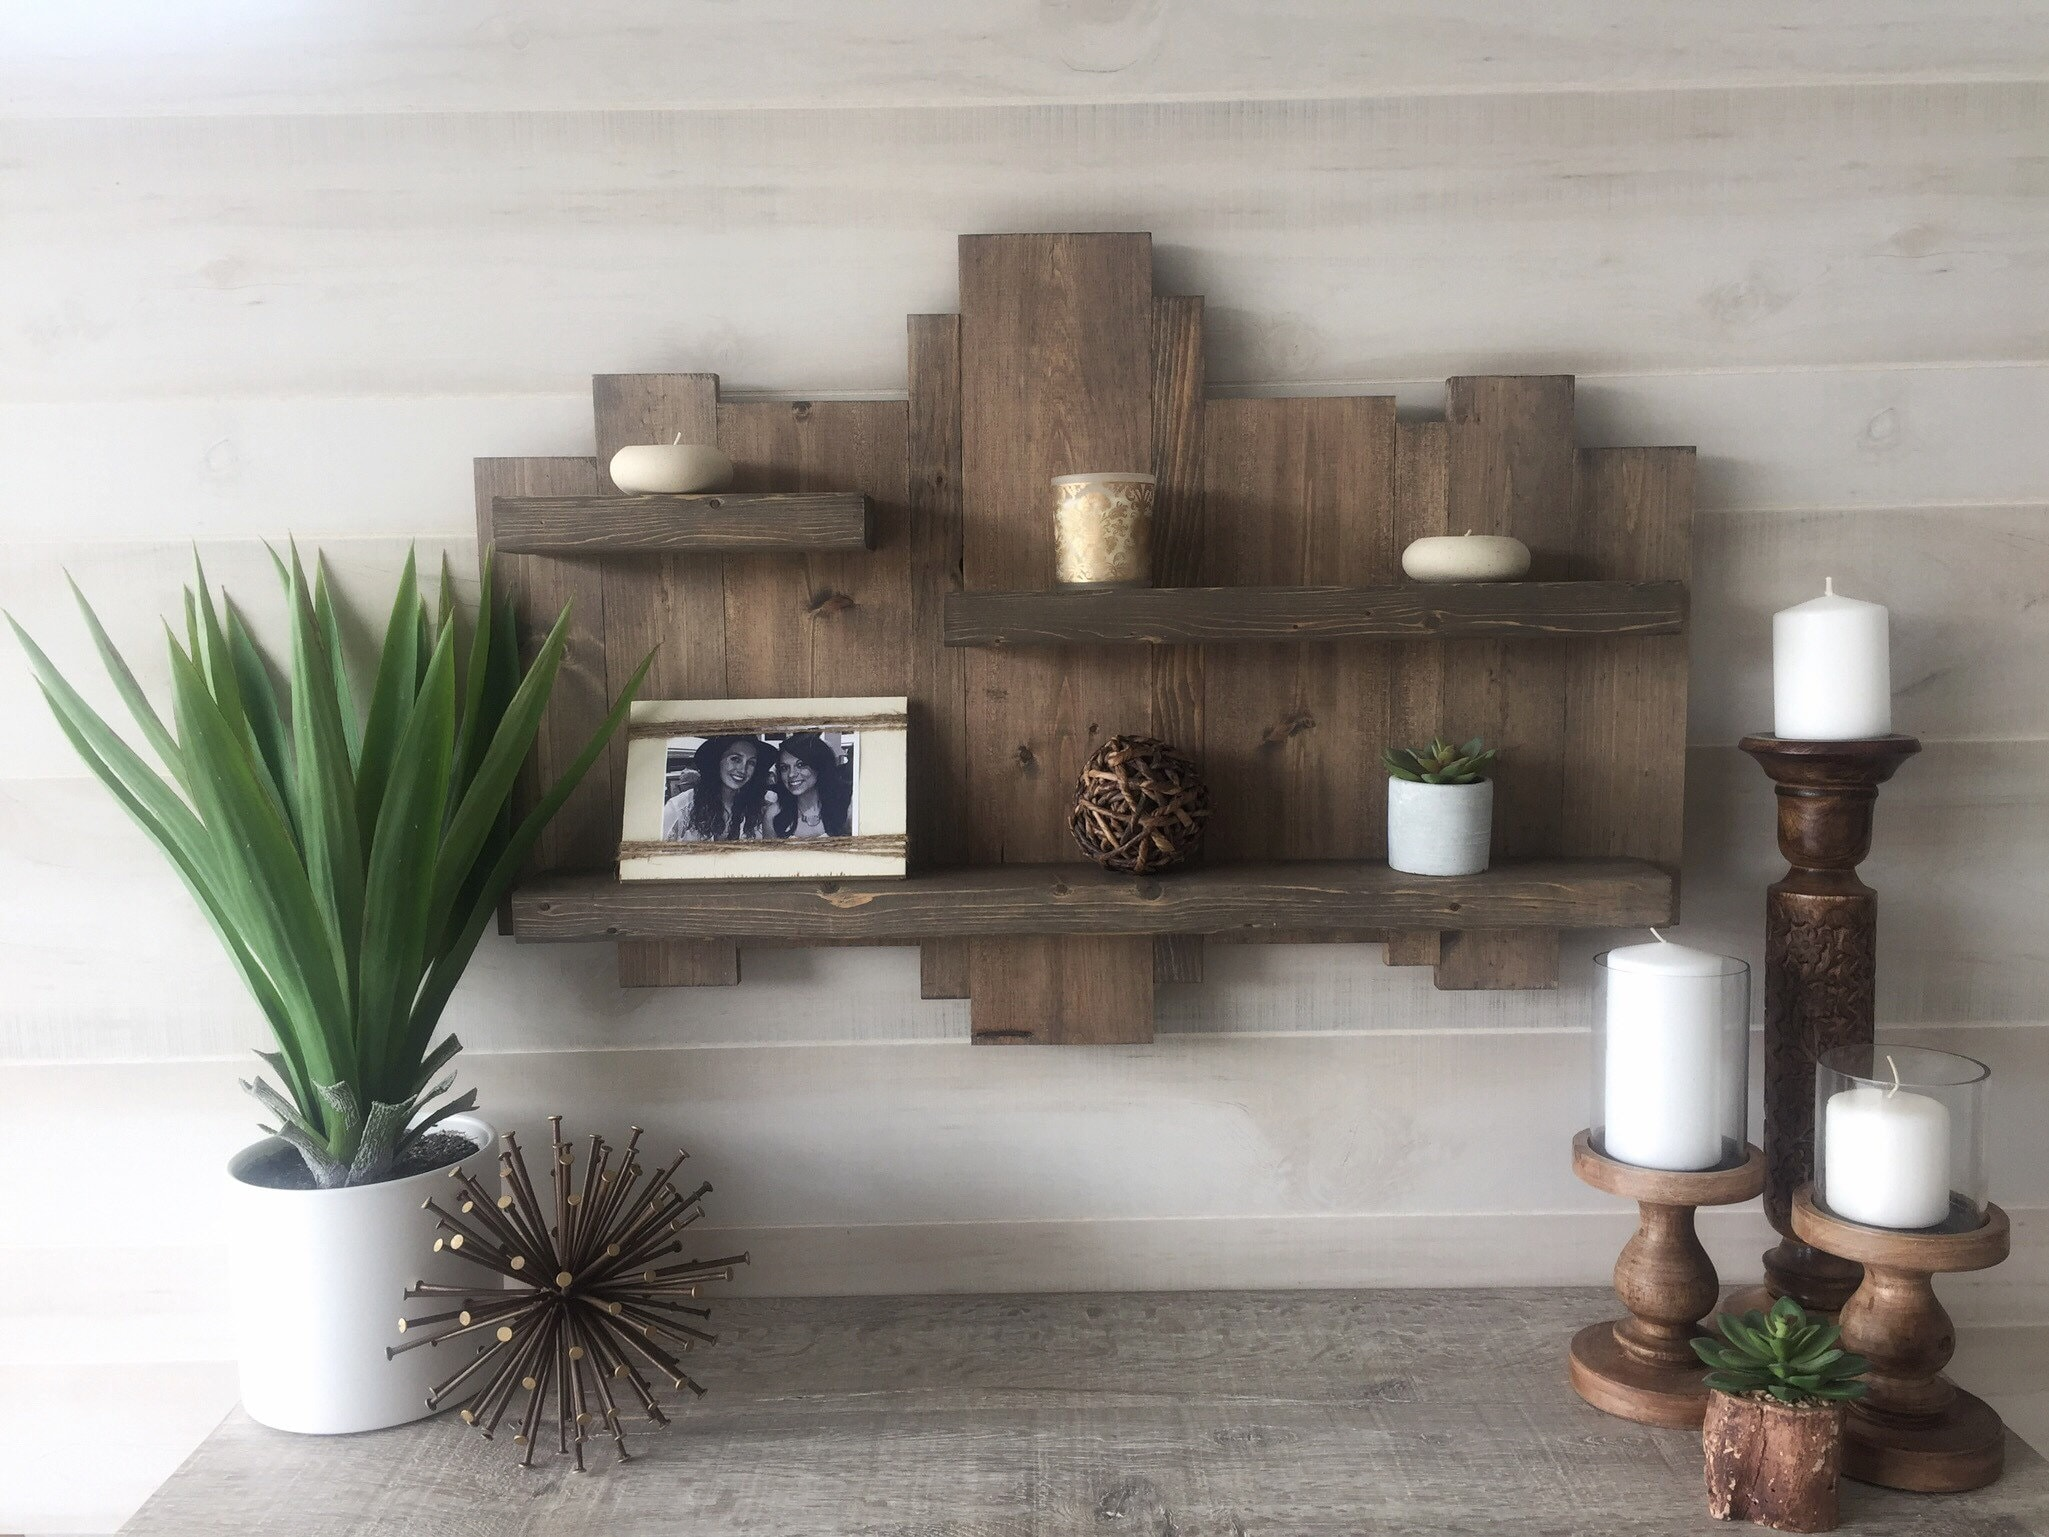 Rustic wall shelf reclaimed wood wall shelf pallet shelf floating shelf wood wall art rustic decor modern farmhouse decor